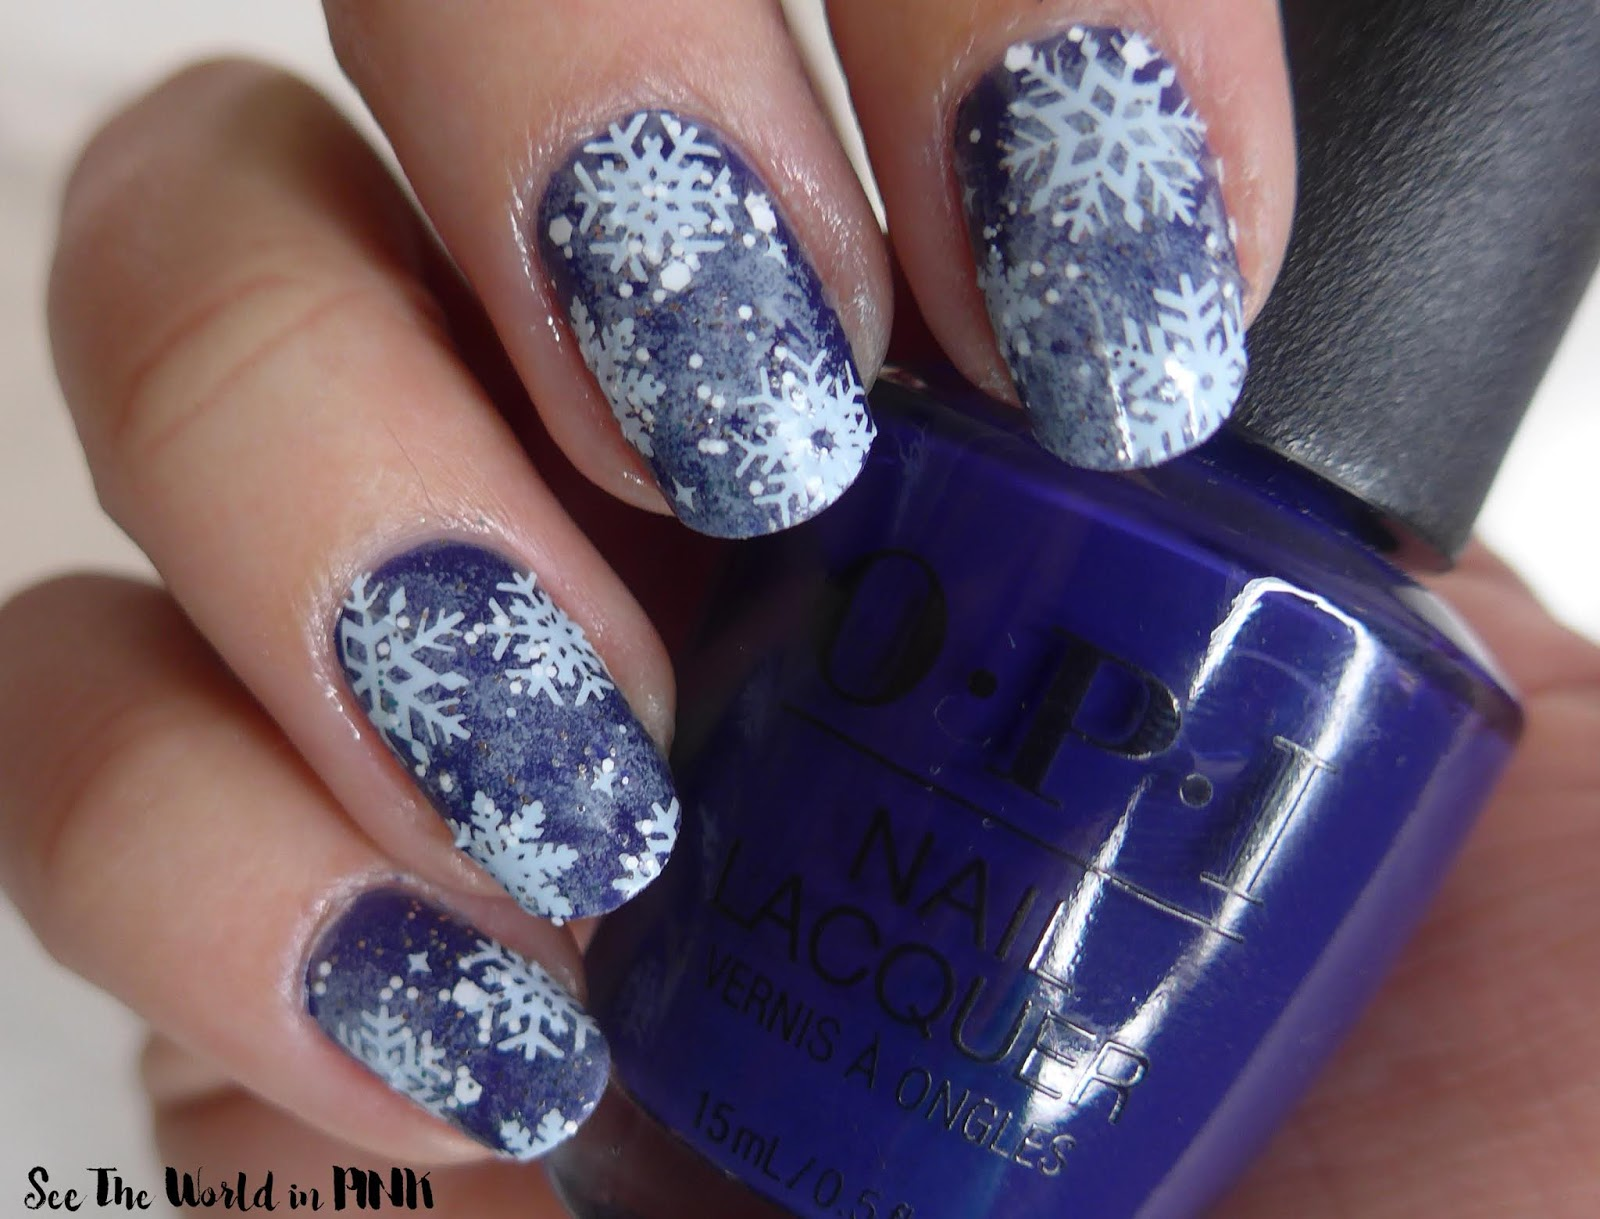 Manicure Monday - Sponged Winter Nails + Scratch Wonderland Nail Wraps